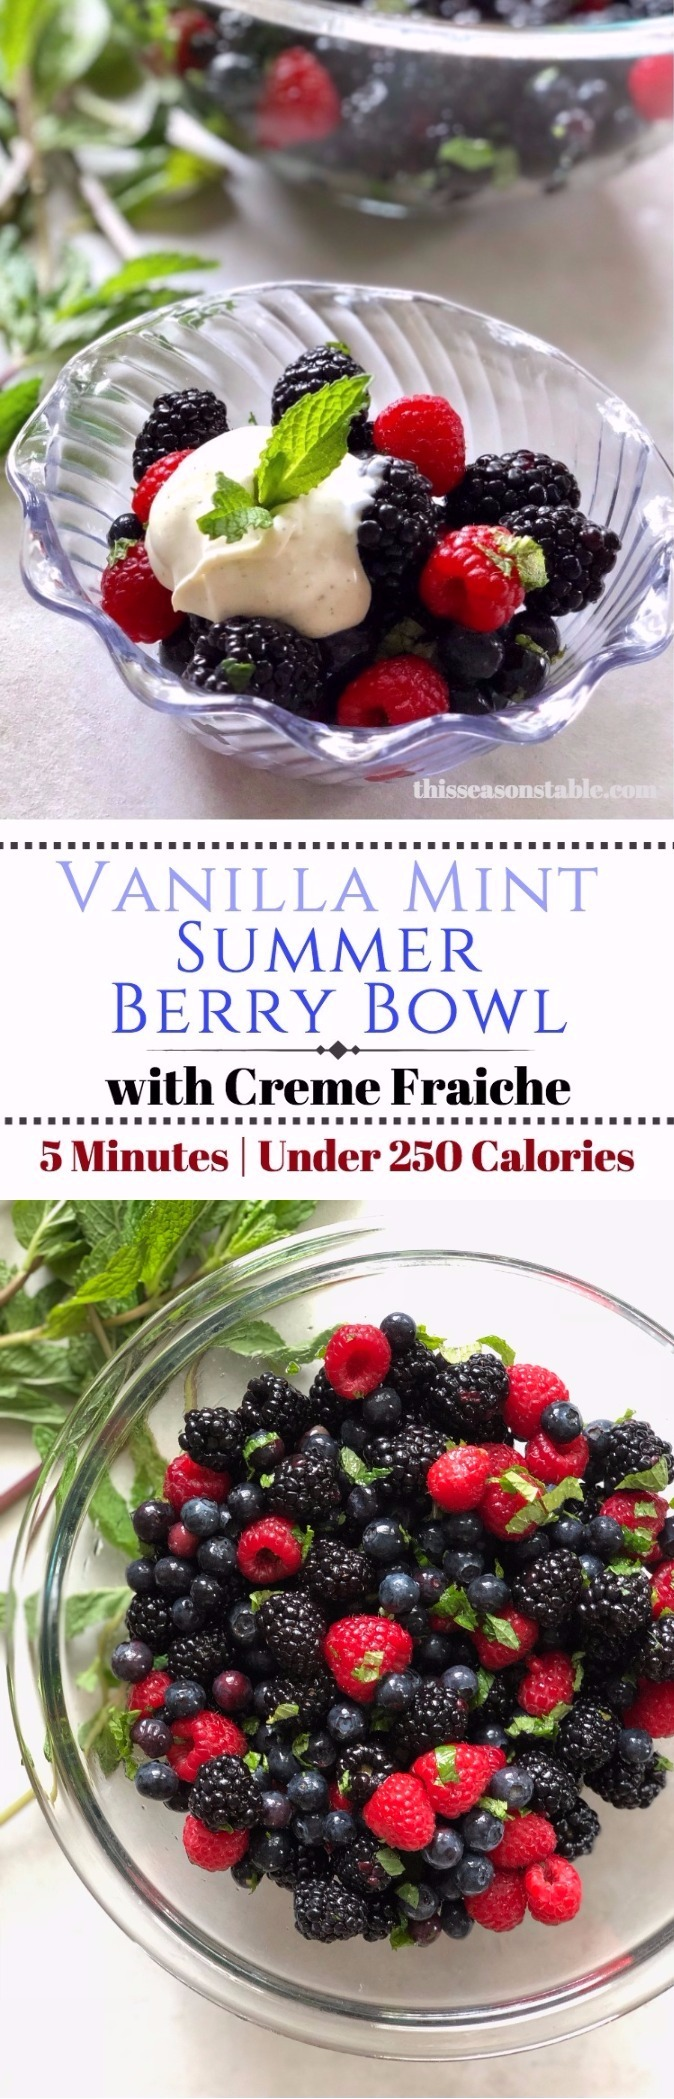 The perfect blend of summer berries coated in a light vanilla mint topping. Full of nutrients and flavor! Makes the perfect gift for new moms too!